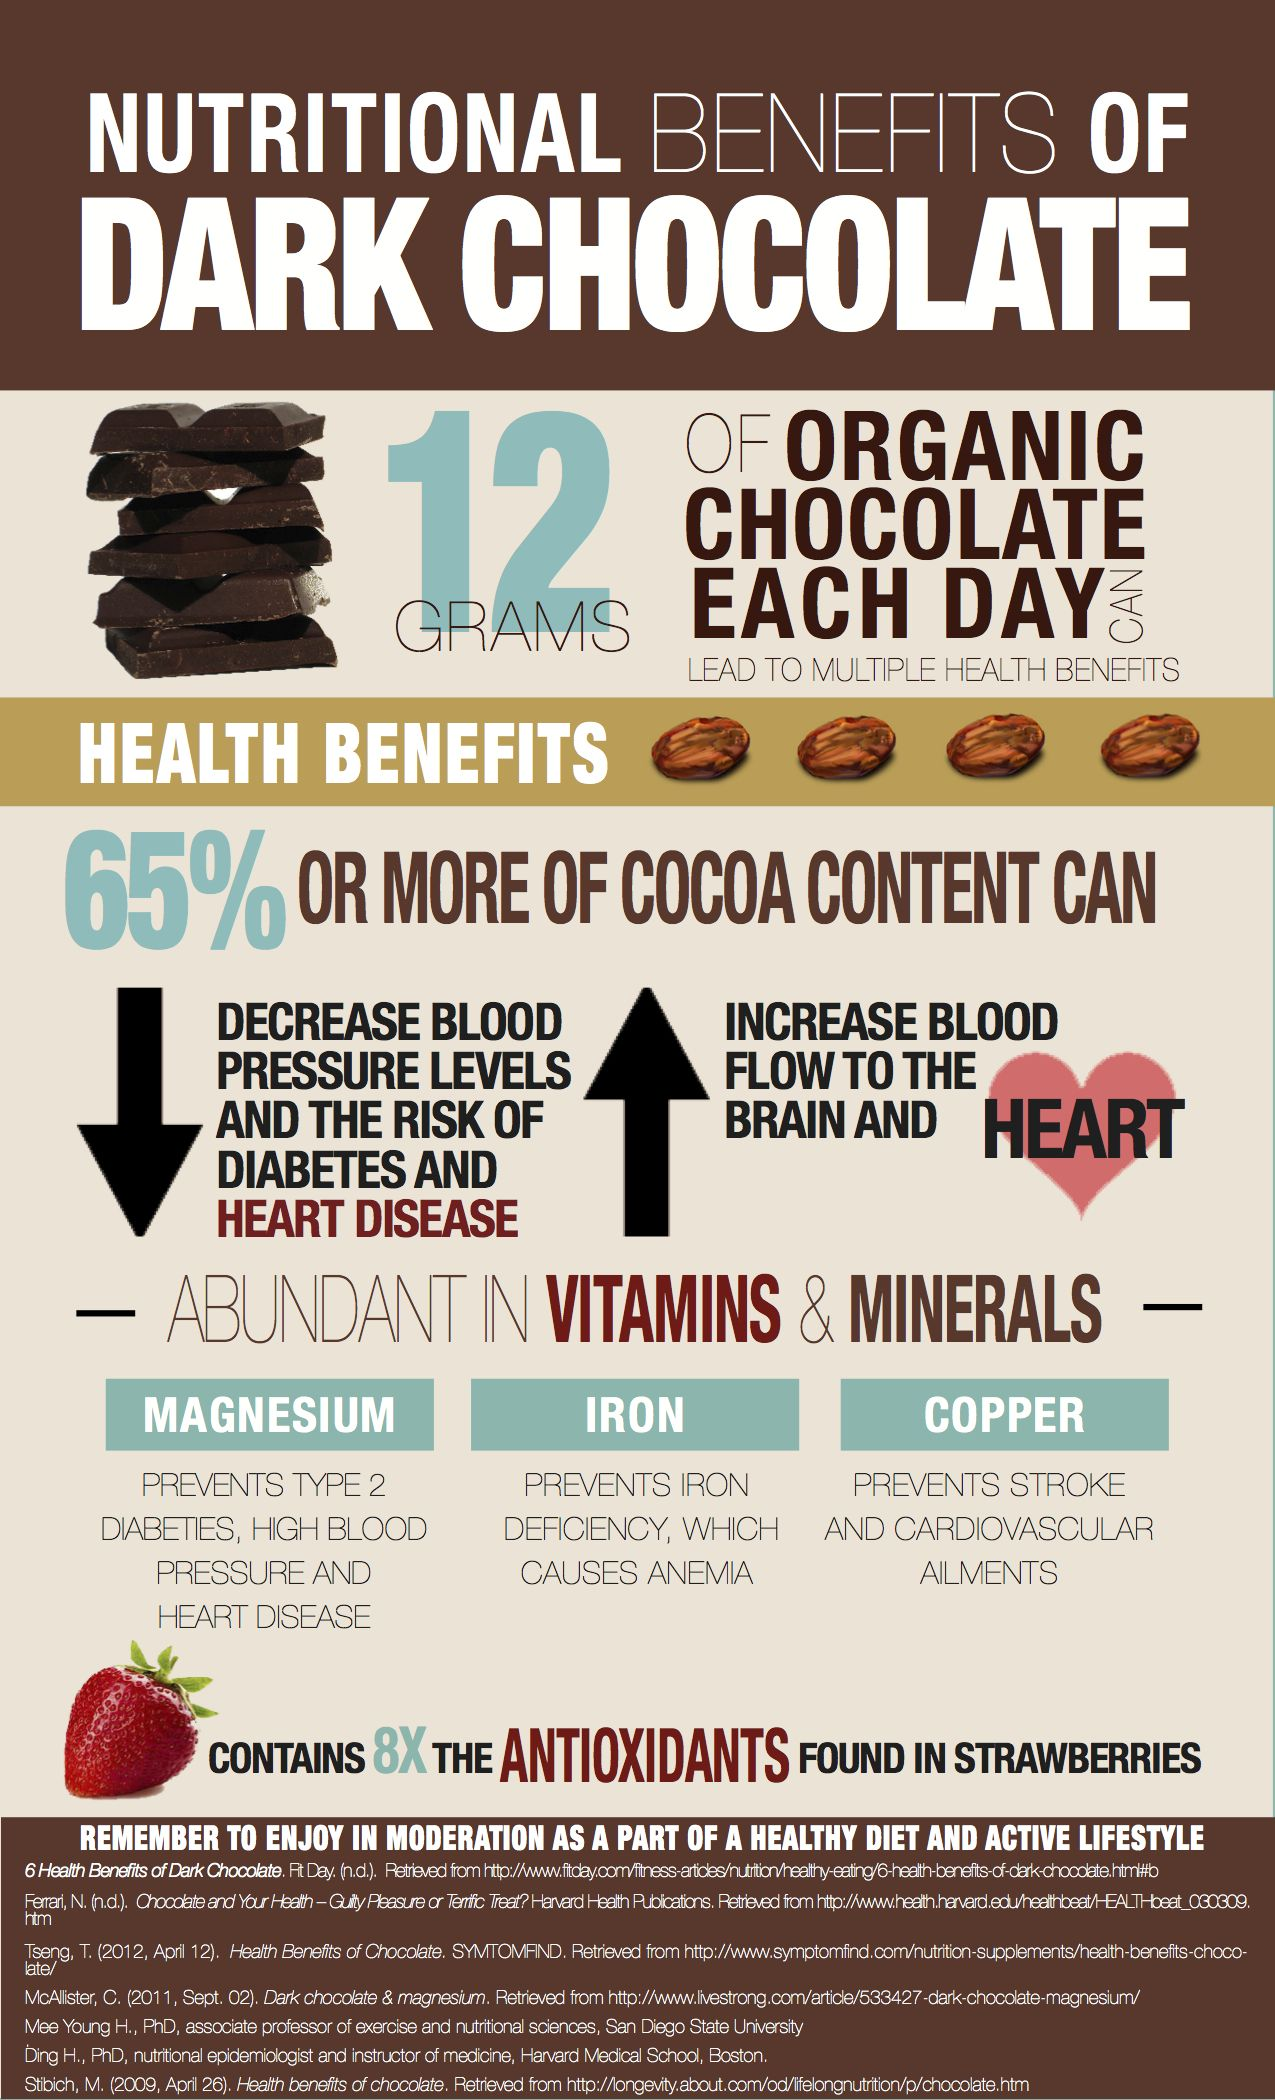 Cocoa: the benefits and harm of the drink 72